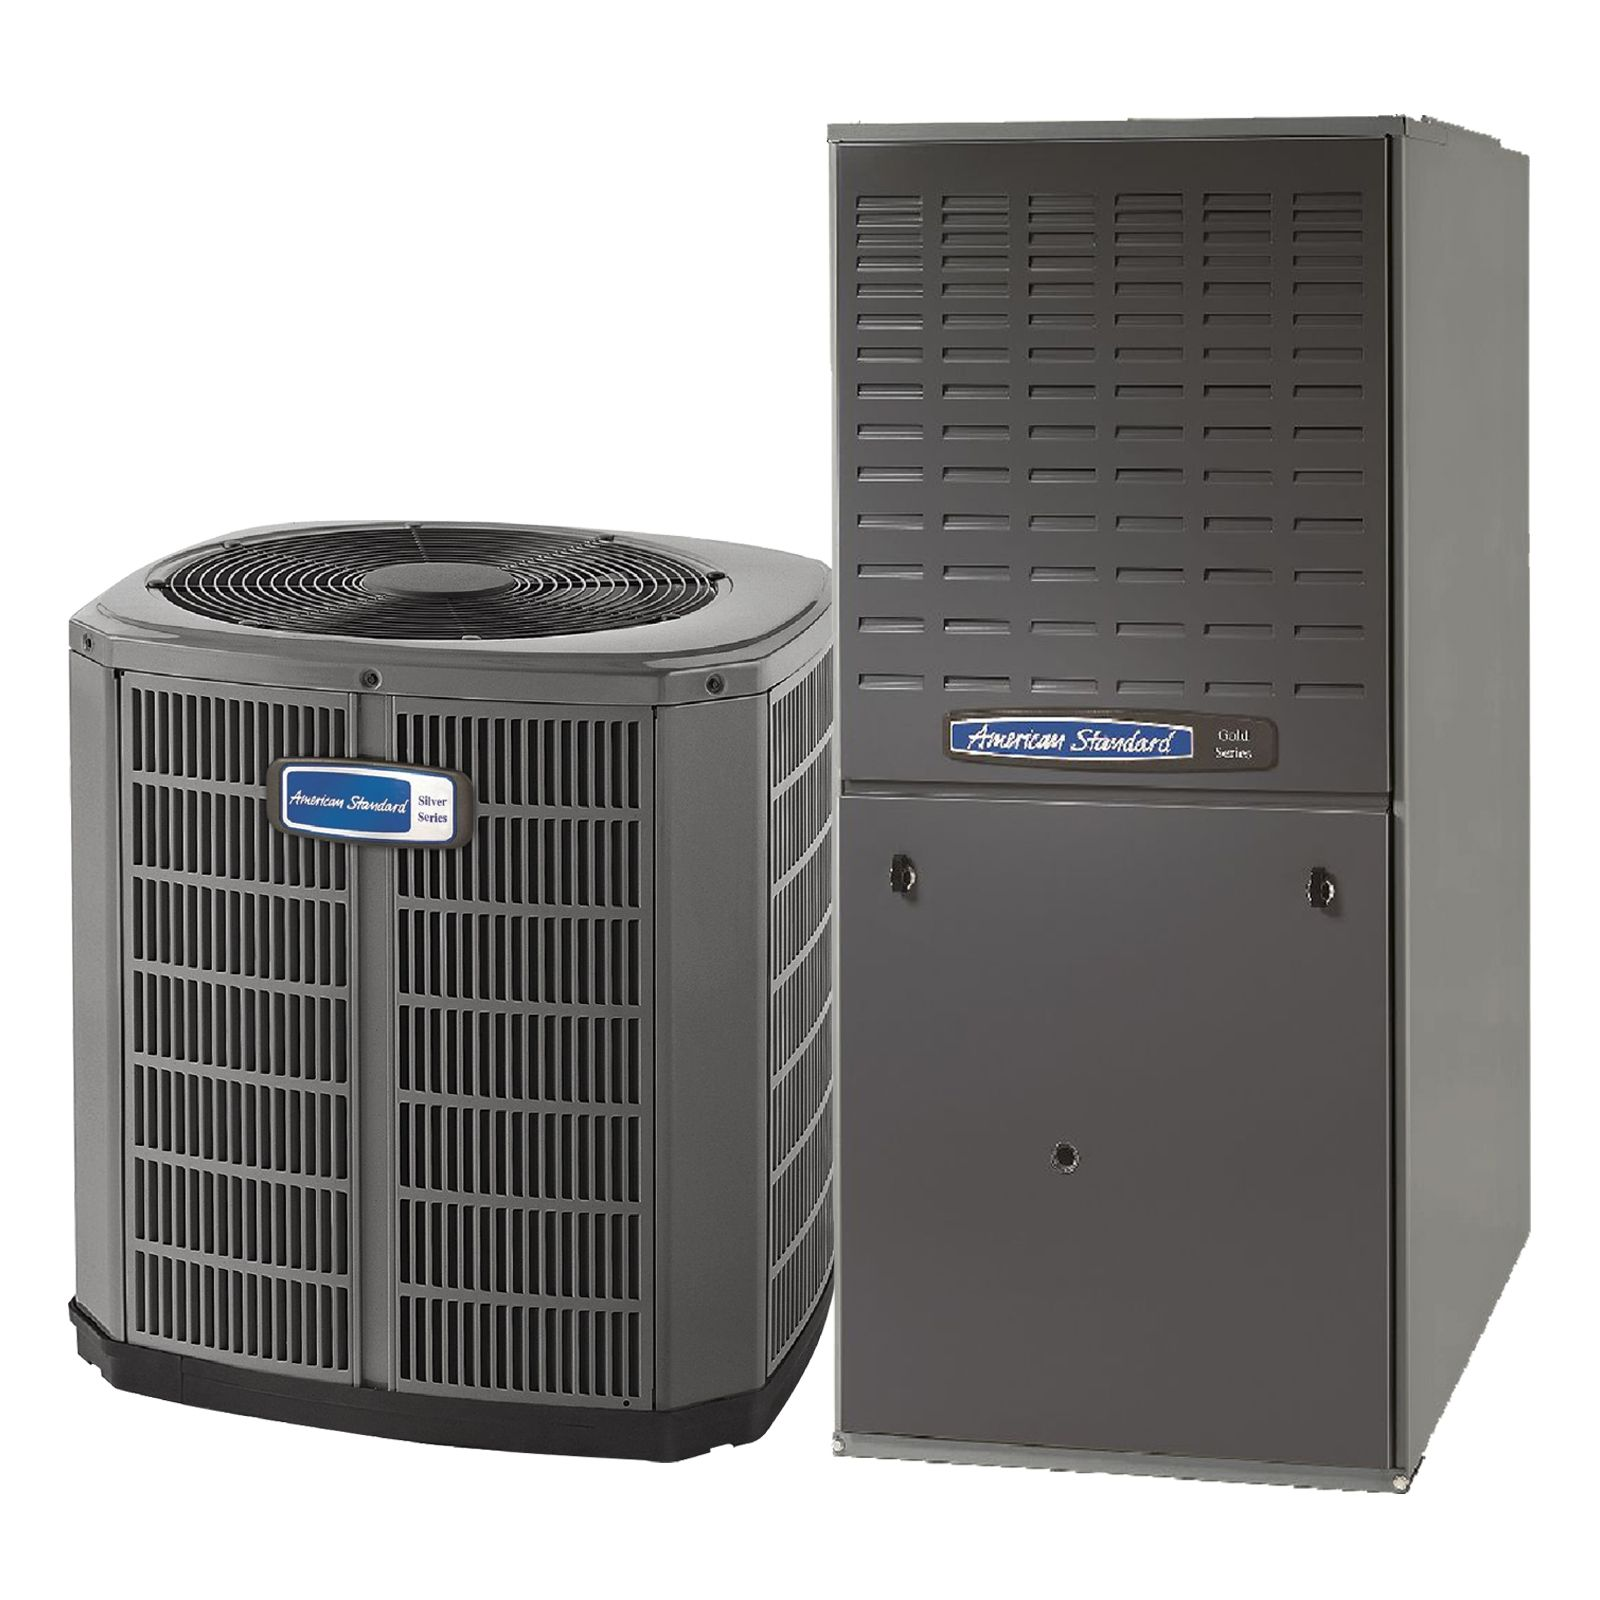 Air Conditioning Equipment for Residential Use Laredo Air Condition  #2A4C84